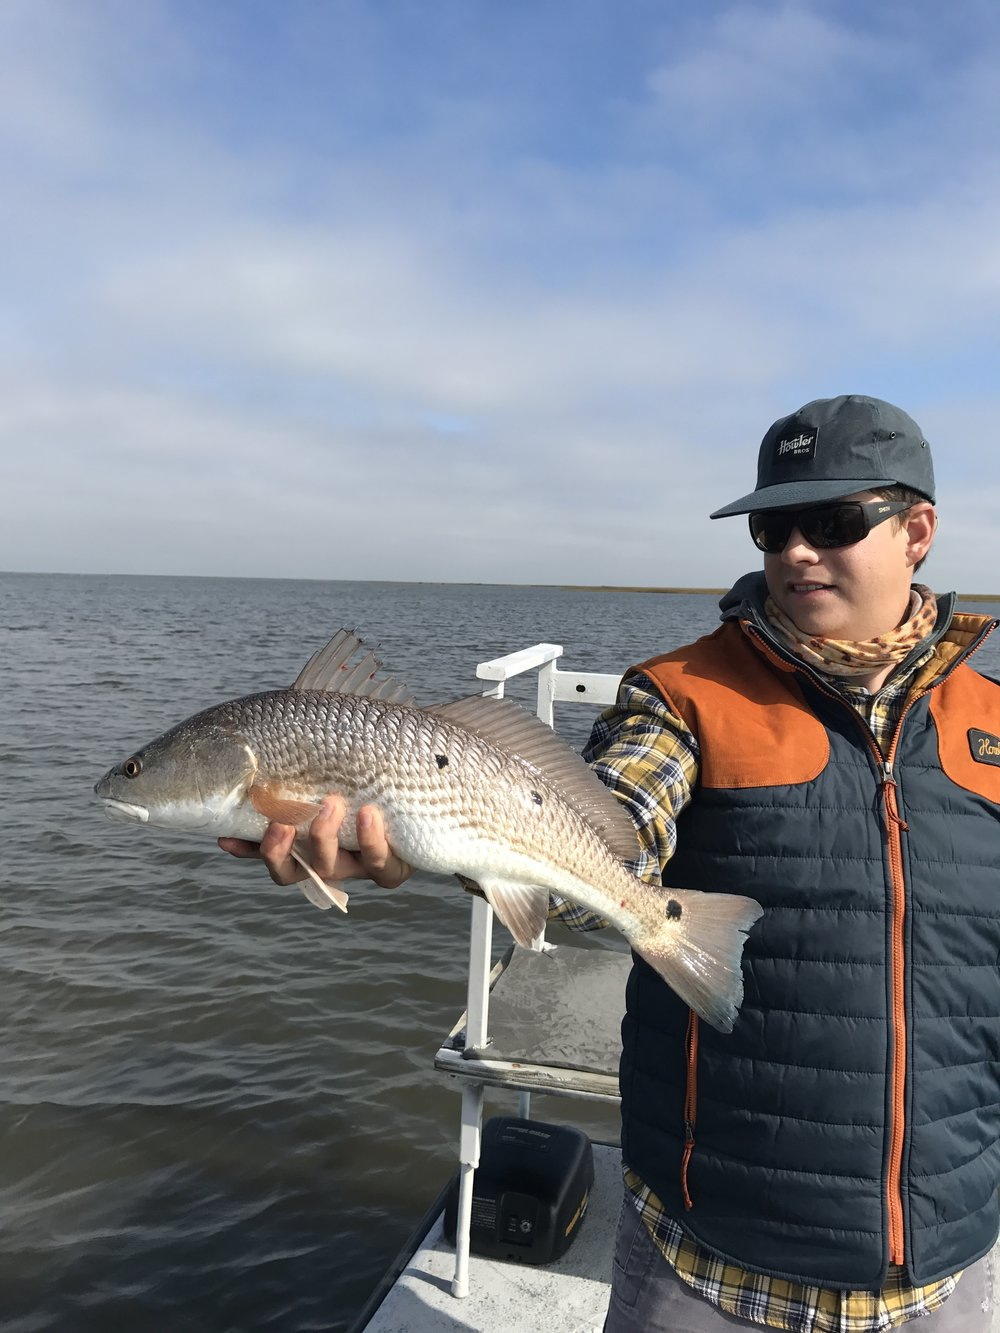 Standard issue skinny water redfish.